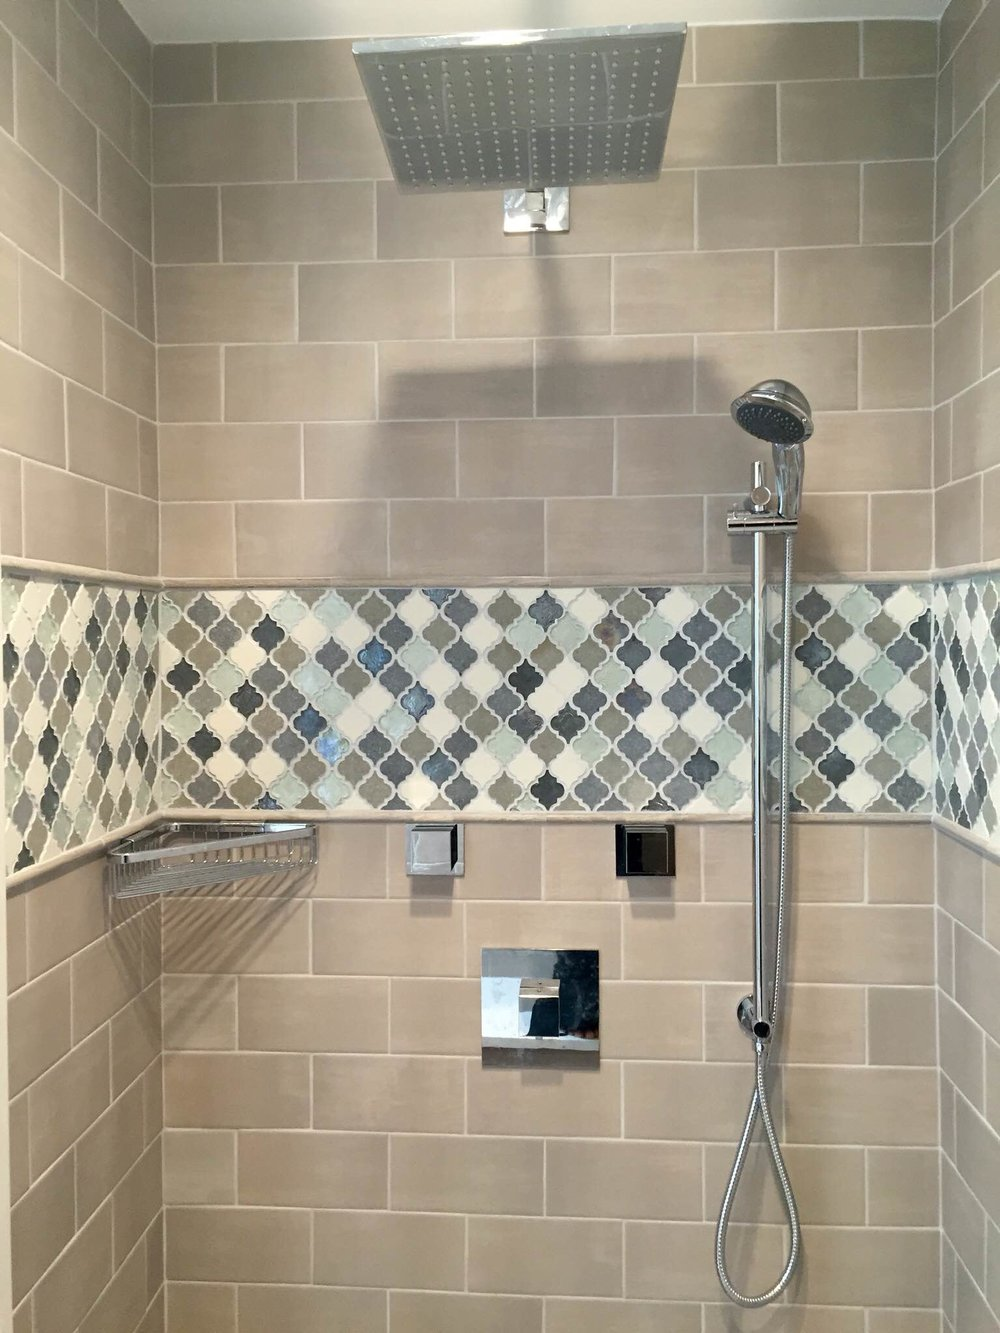 The client picked a mosaic tile accent to add visual interest to the the subway tile.